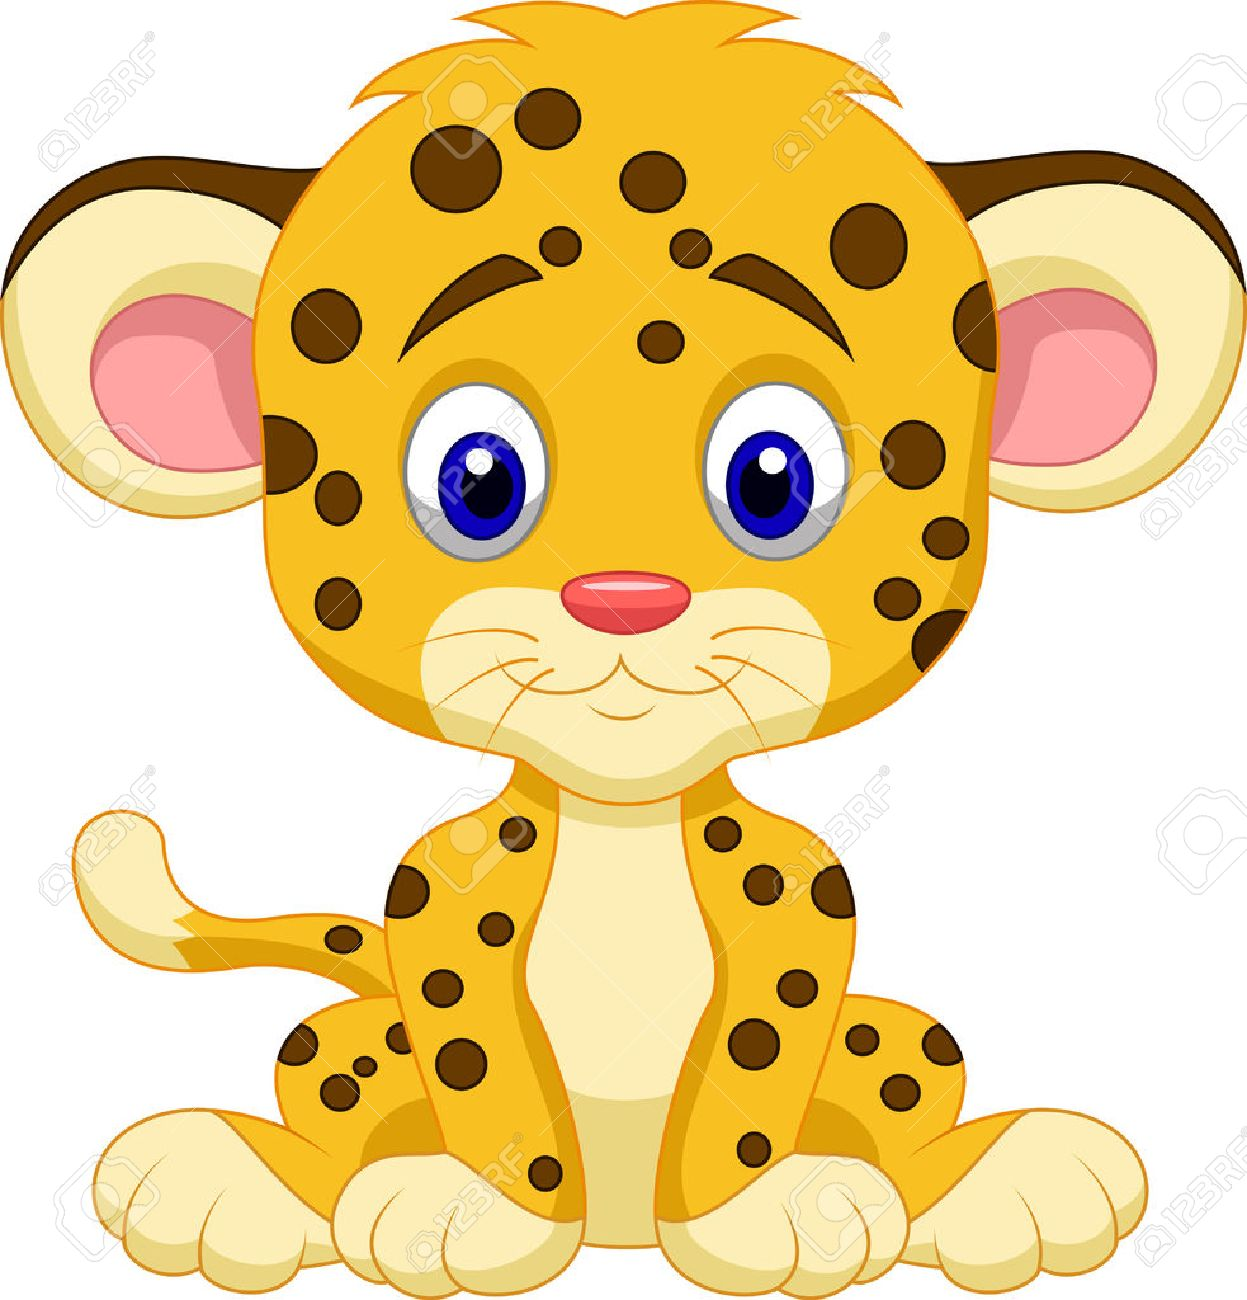 Baby Leopard Cartoon Royalty Free Cliparts, Vectors, And Stock ... for Clipart Leopard Cute  165jwn